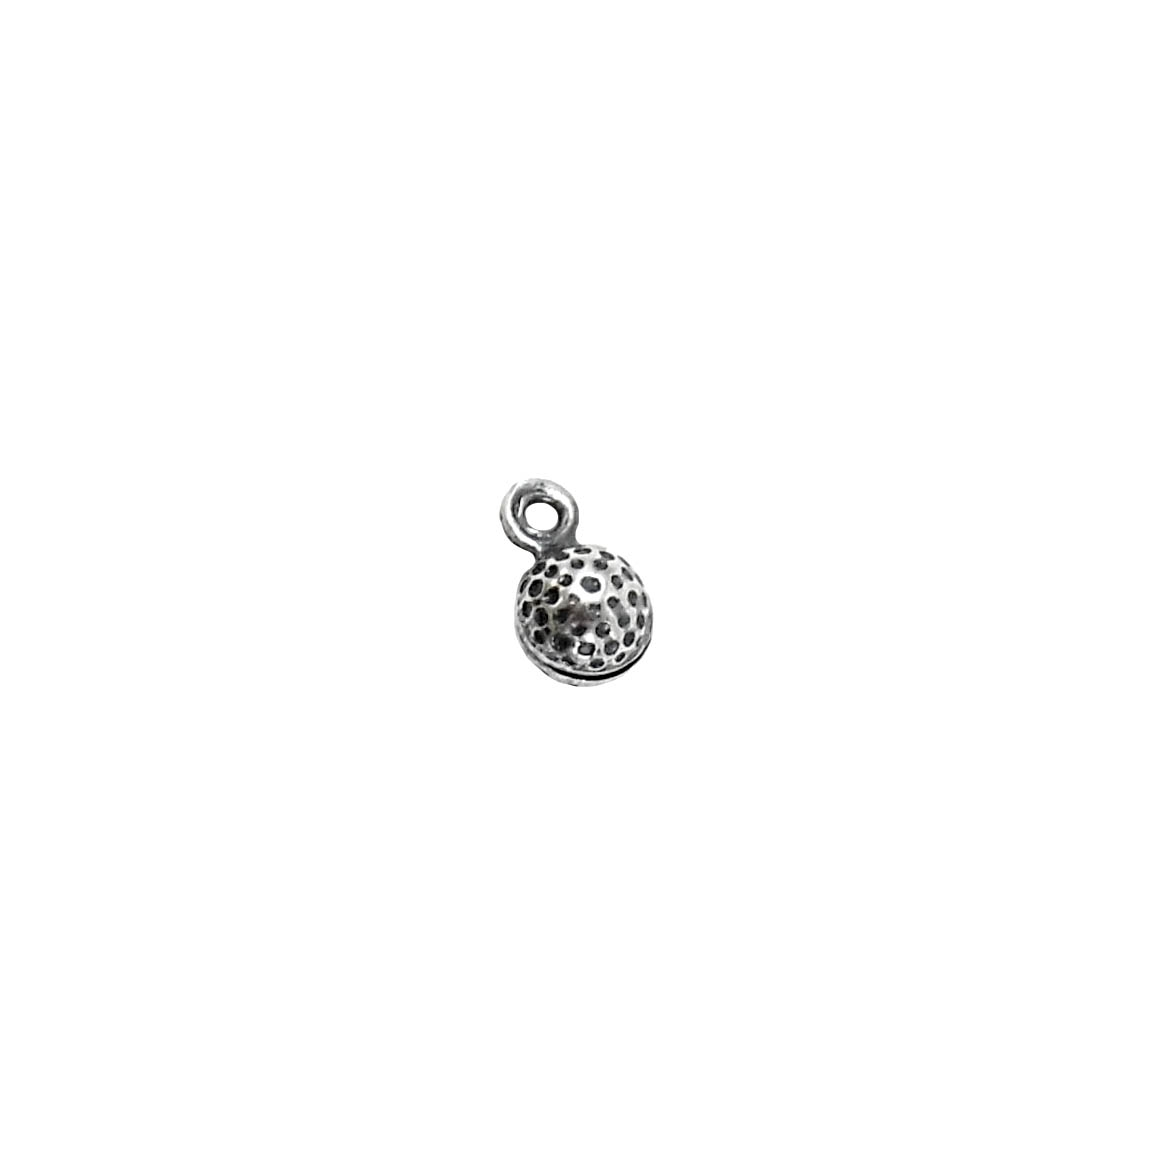 golfing charms, jewelry making, antique silver,5mm